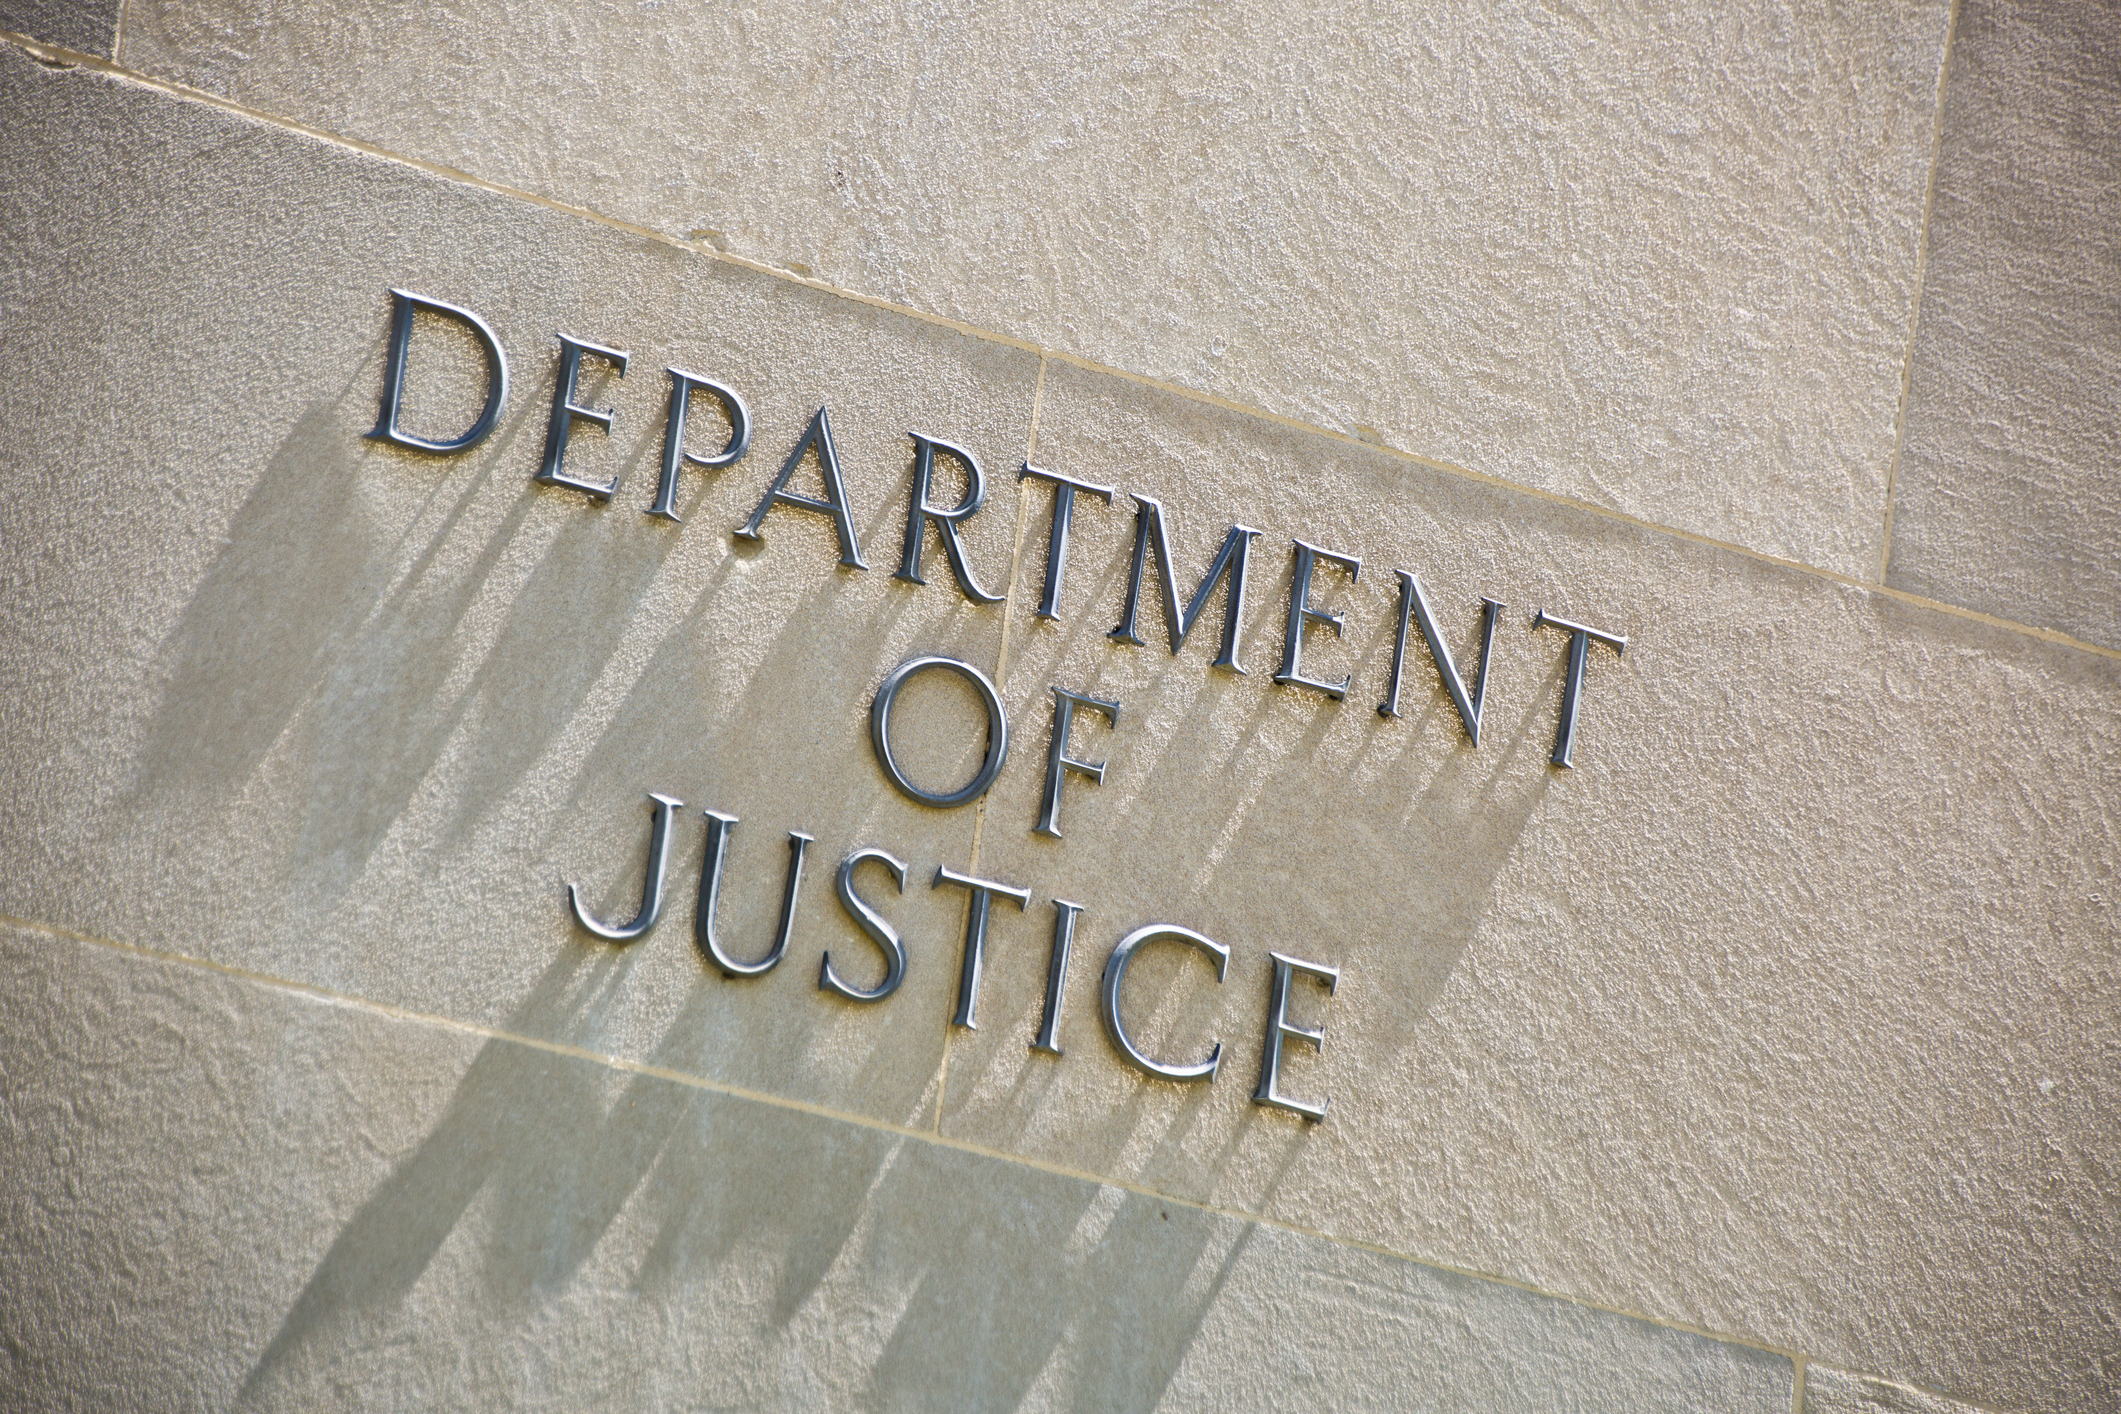 EJUL has filed nine administrative complaints with the DOJ alleging racial discrimination in bail practices across the country. -